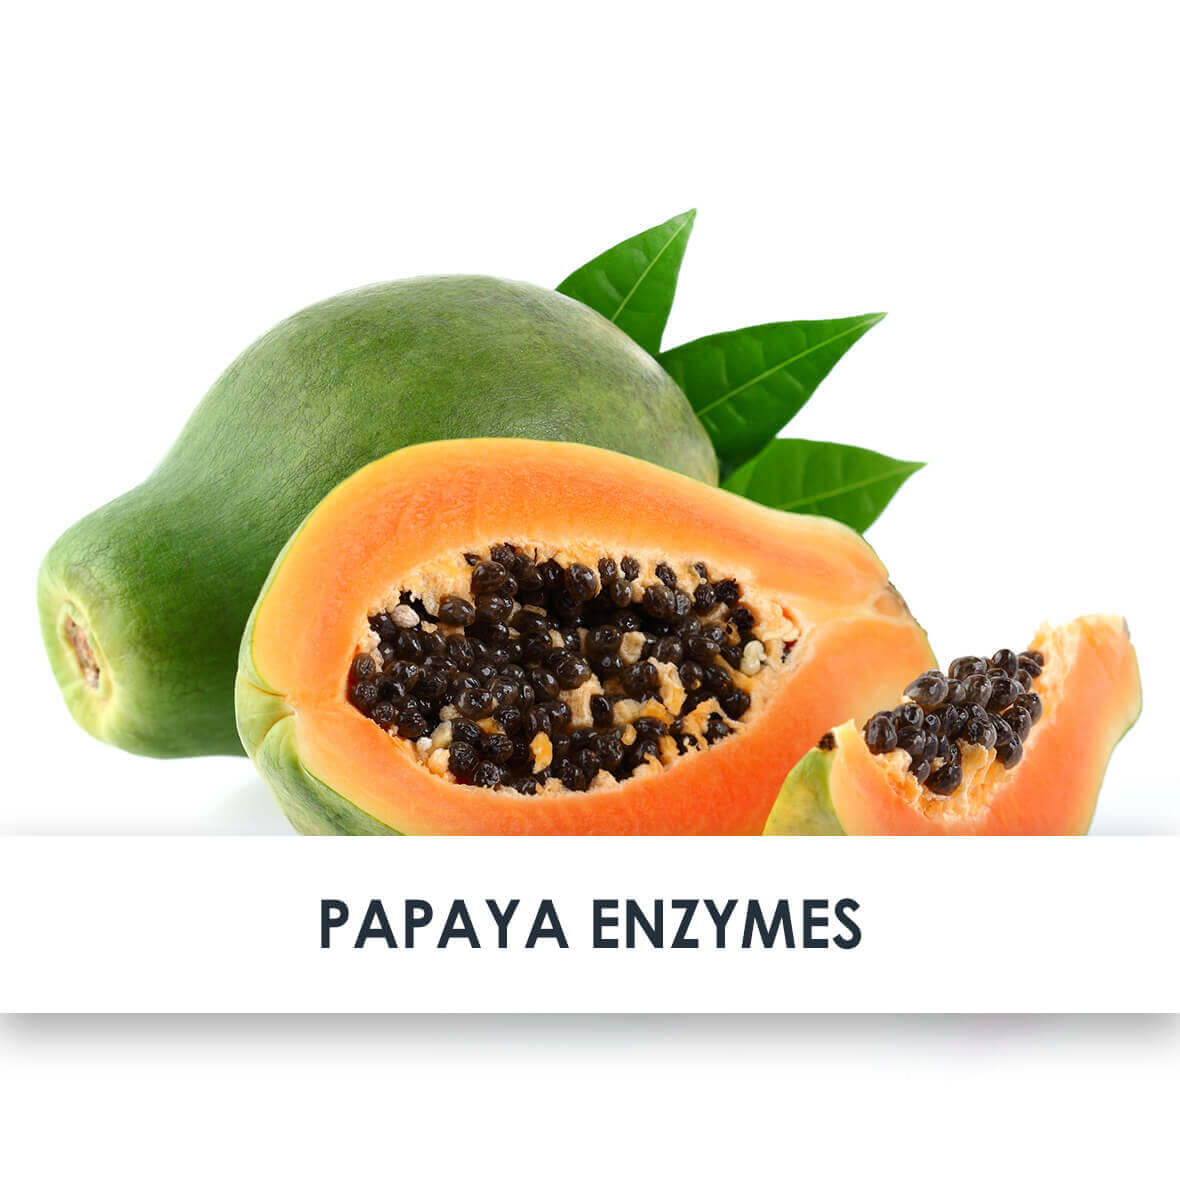 Papaya Enzymes Skincare Benefits